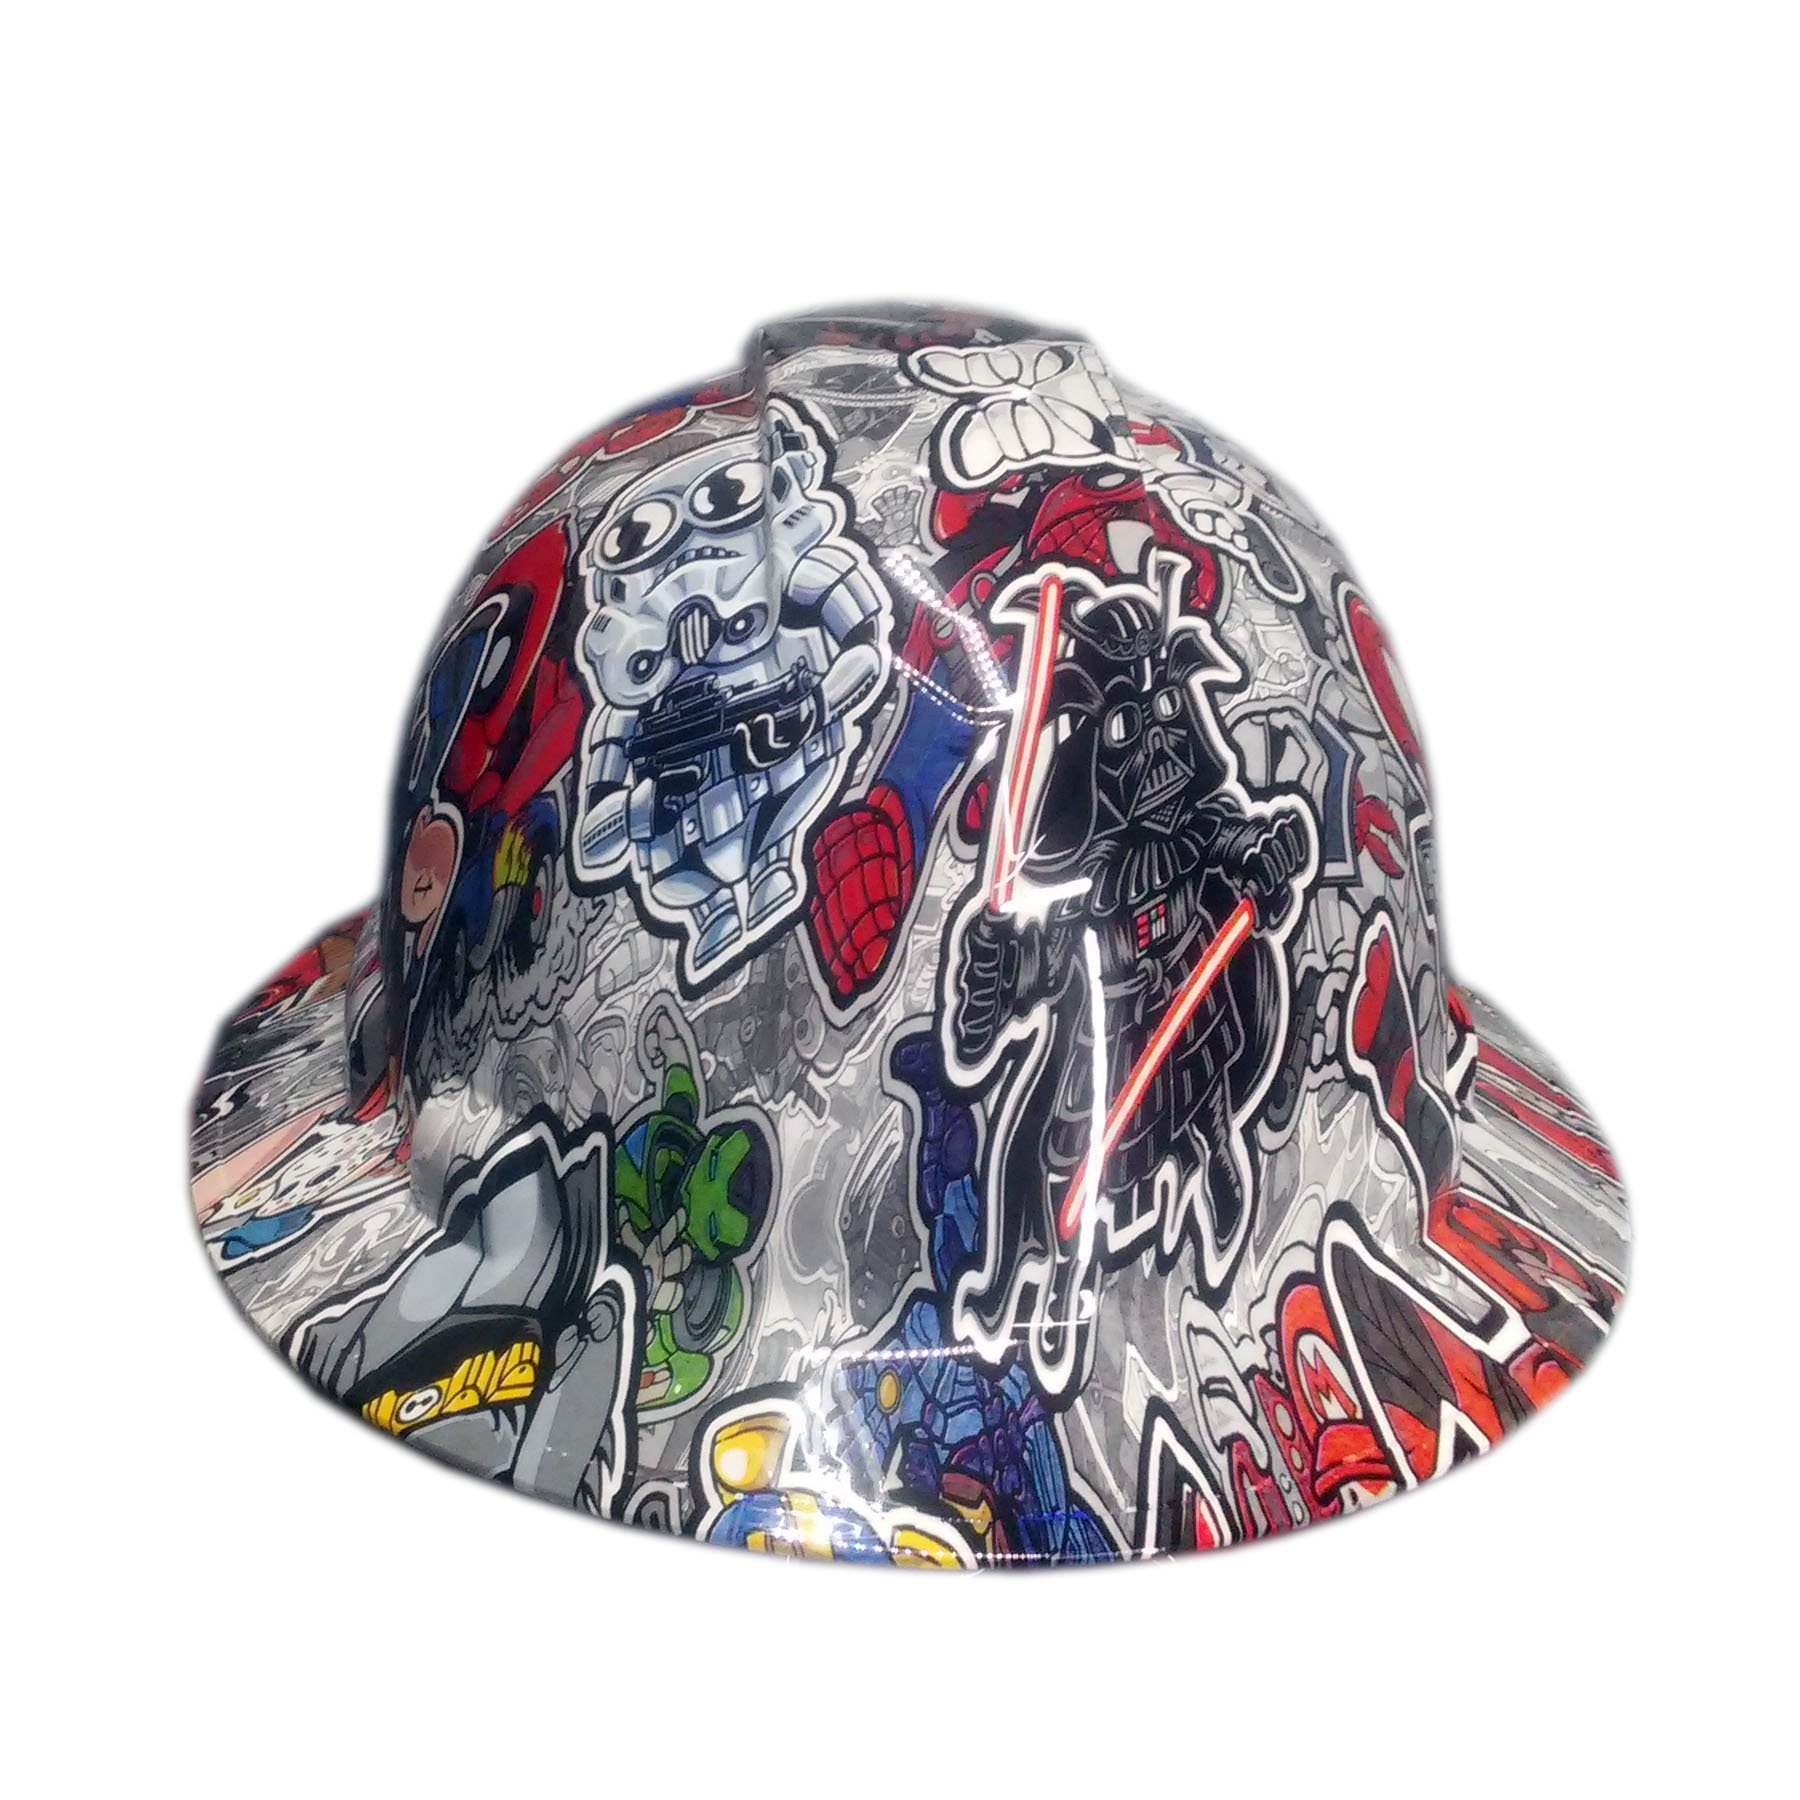 Izzo Graphics Twisted Toons Pyramex Ridgeline Full Brim Hard Hat by IzzoGraphics.com